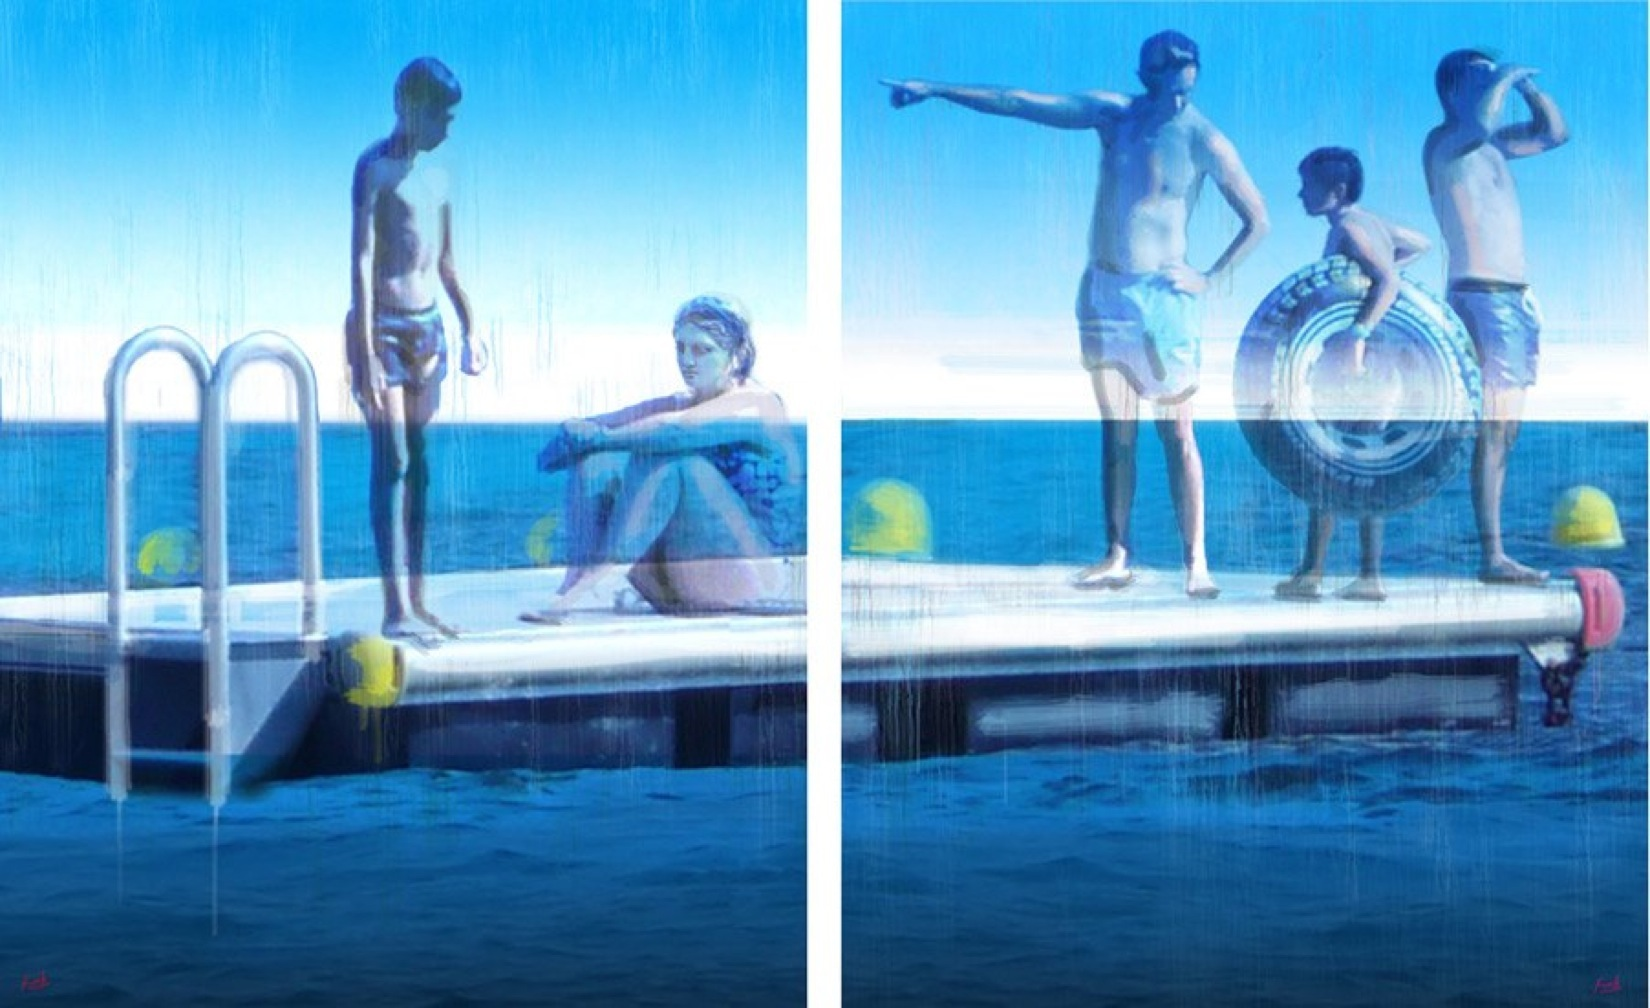 The island by mia funk oil on canvas (diptych), 2 x 162 x 130cm